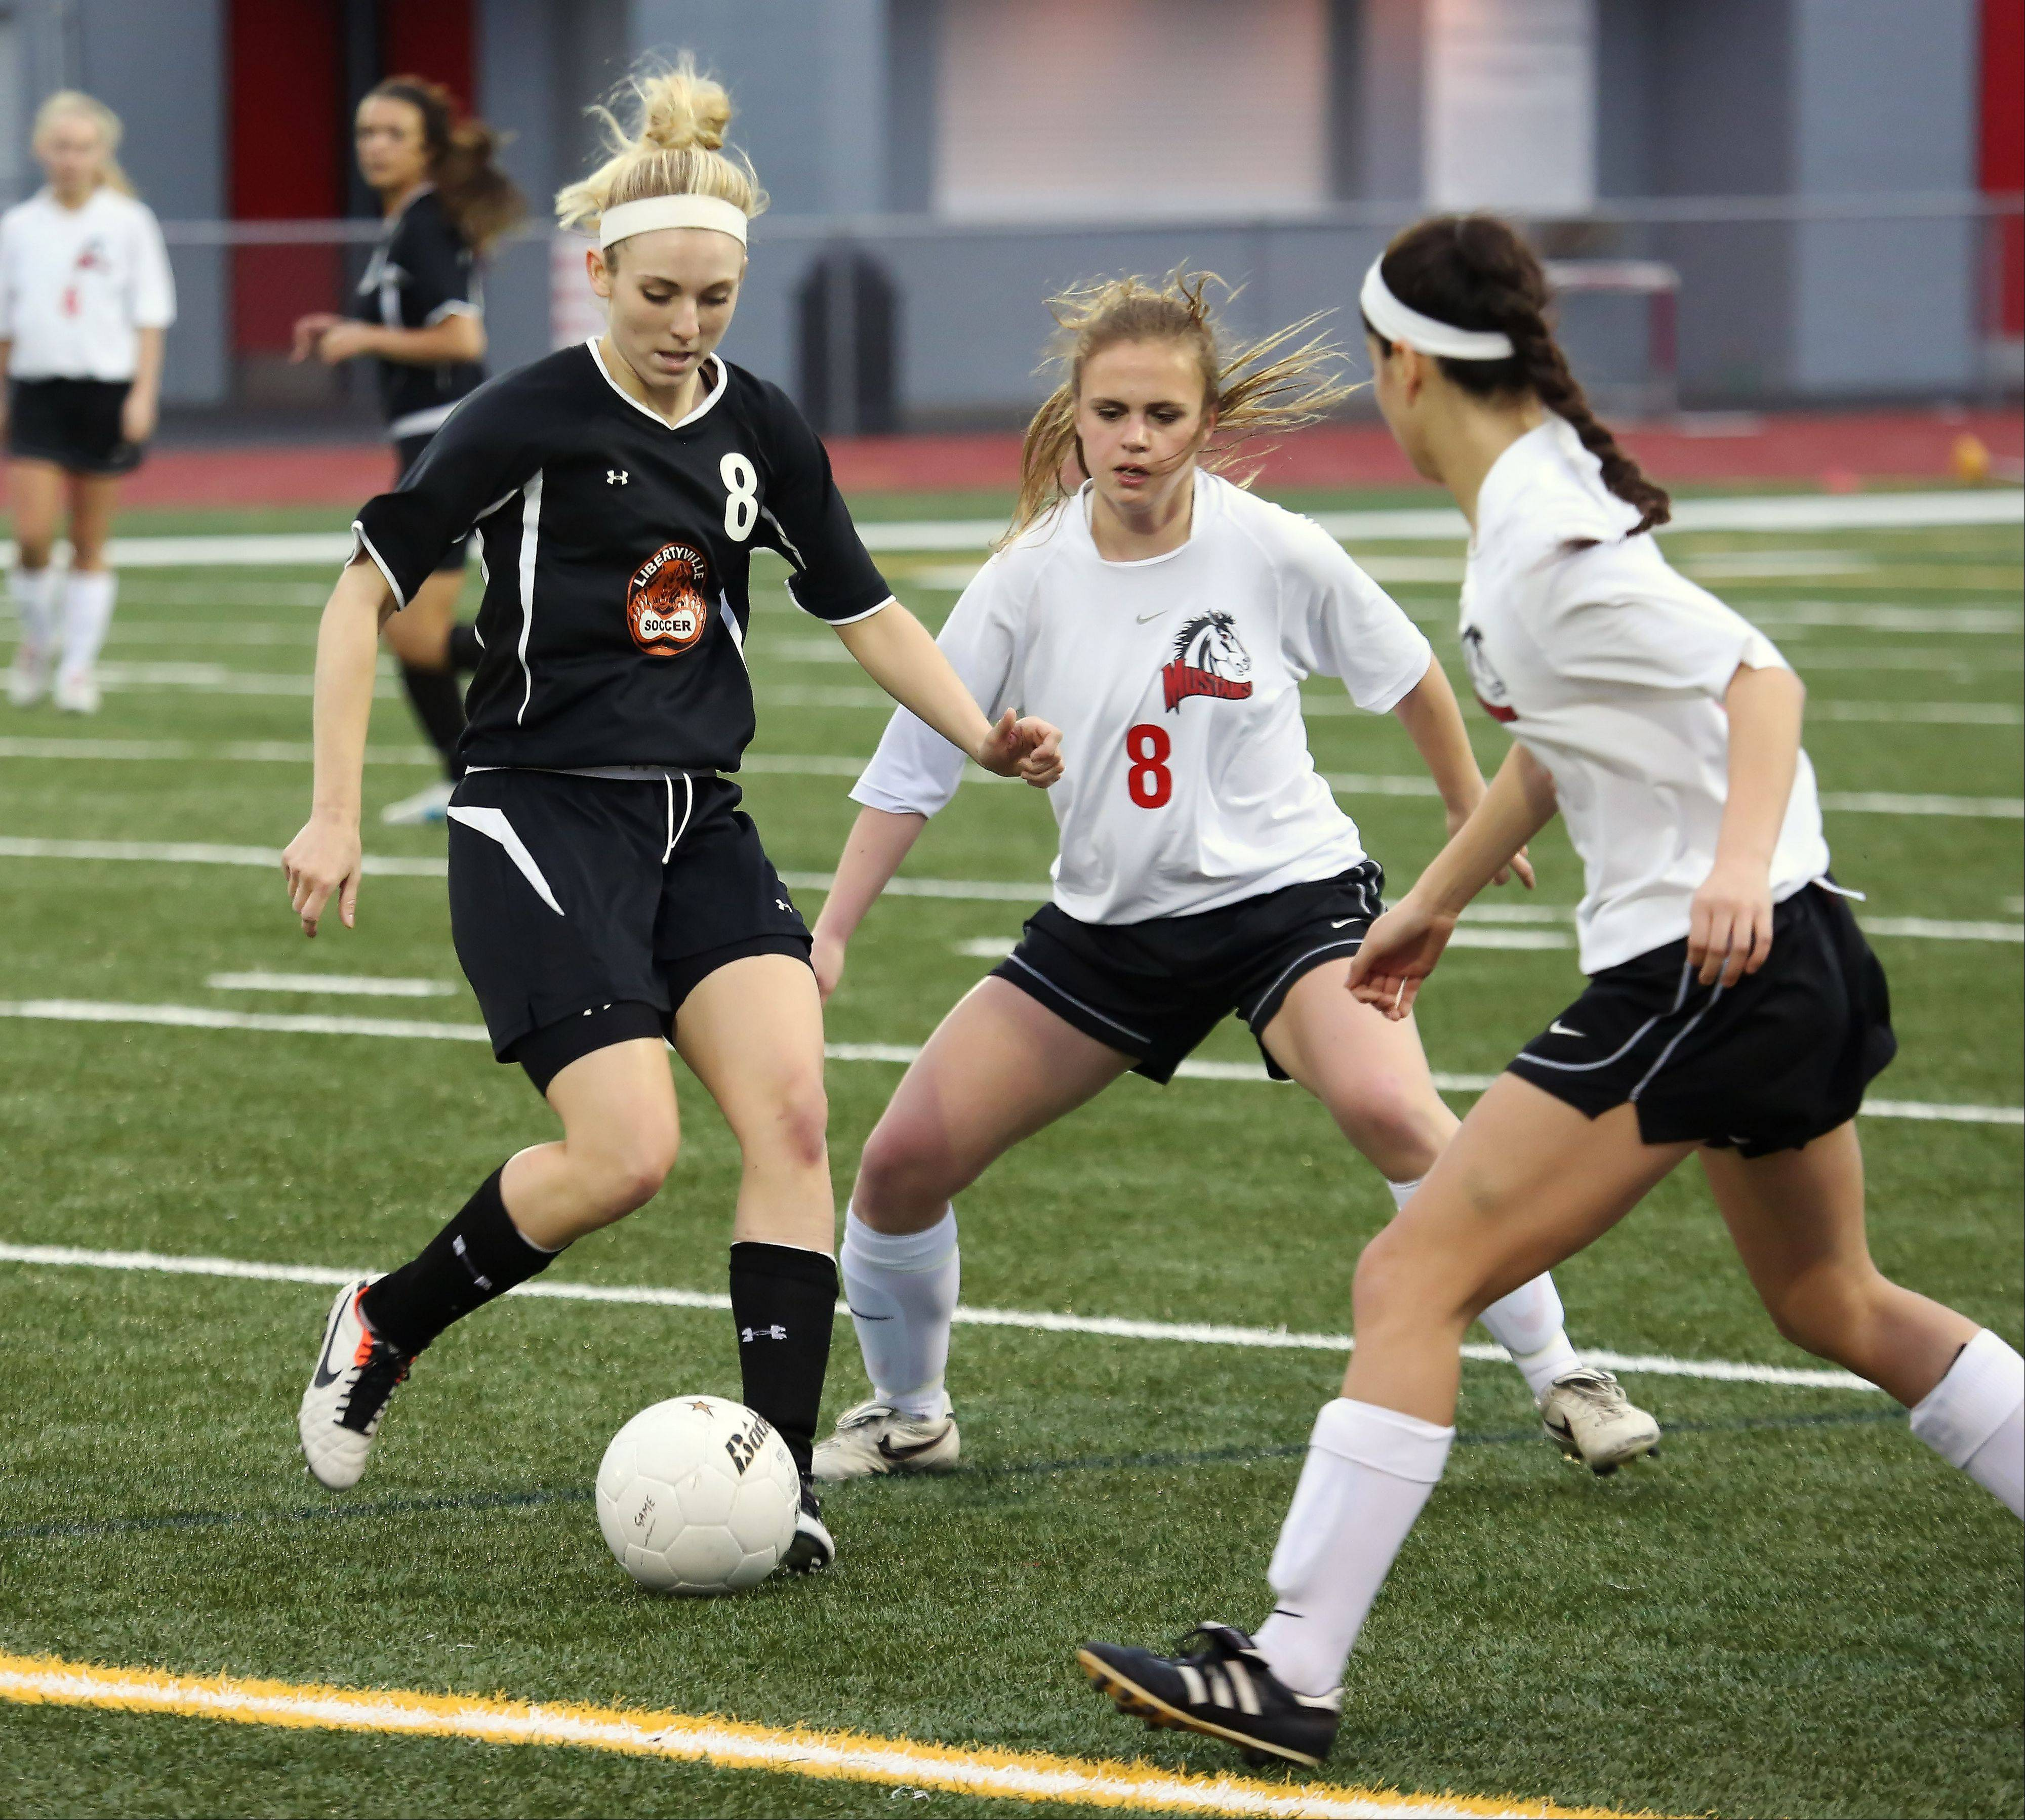 Libertyville midfielder Sam Marsh dribbles around Mundelein midfielder Kelly Grove on Thursday at Mundelein.